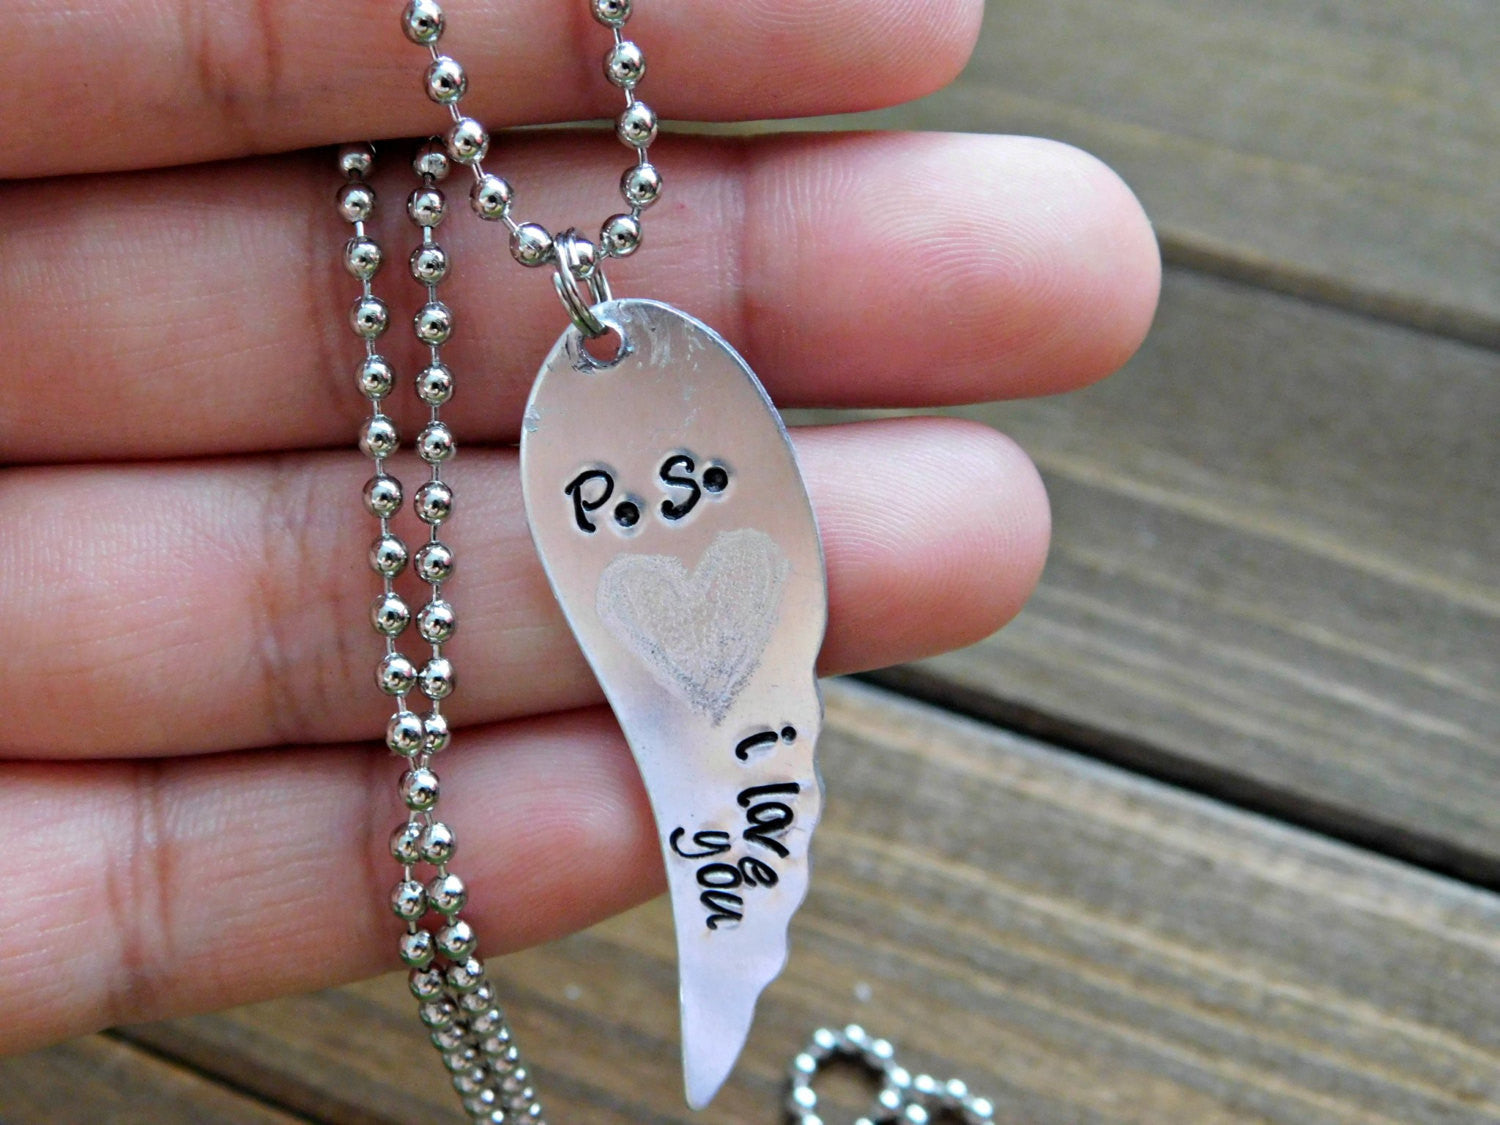 PS I Love You Message Necklace I Love You Necklace Engraved Necklace Wing Necklace Love Necklace Angel Wing Pendant Silver Chain Boho Gift